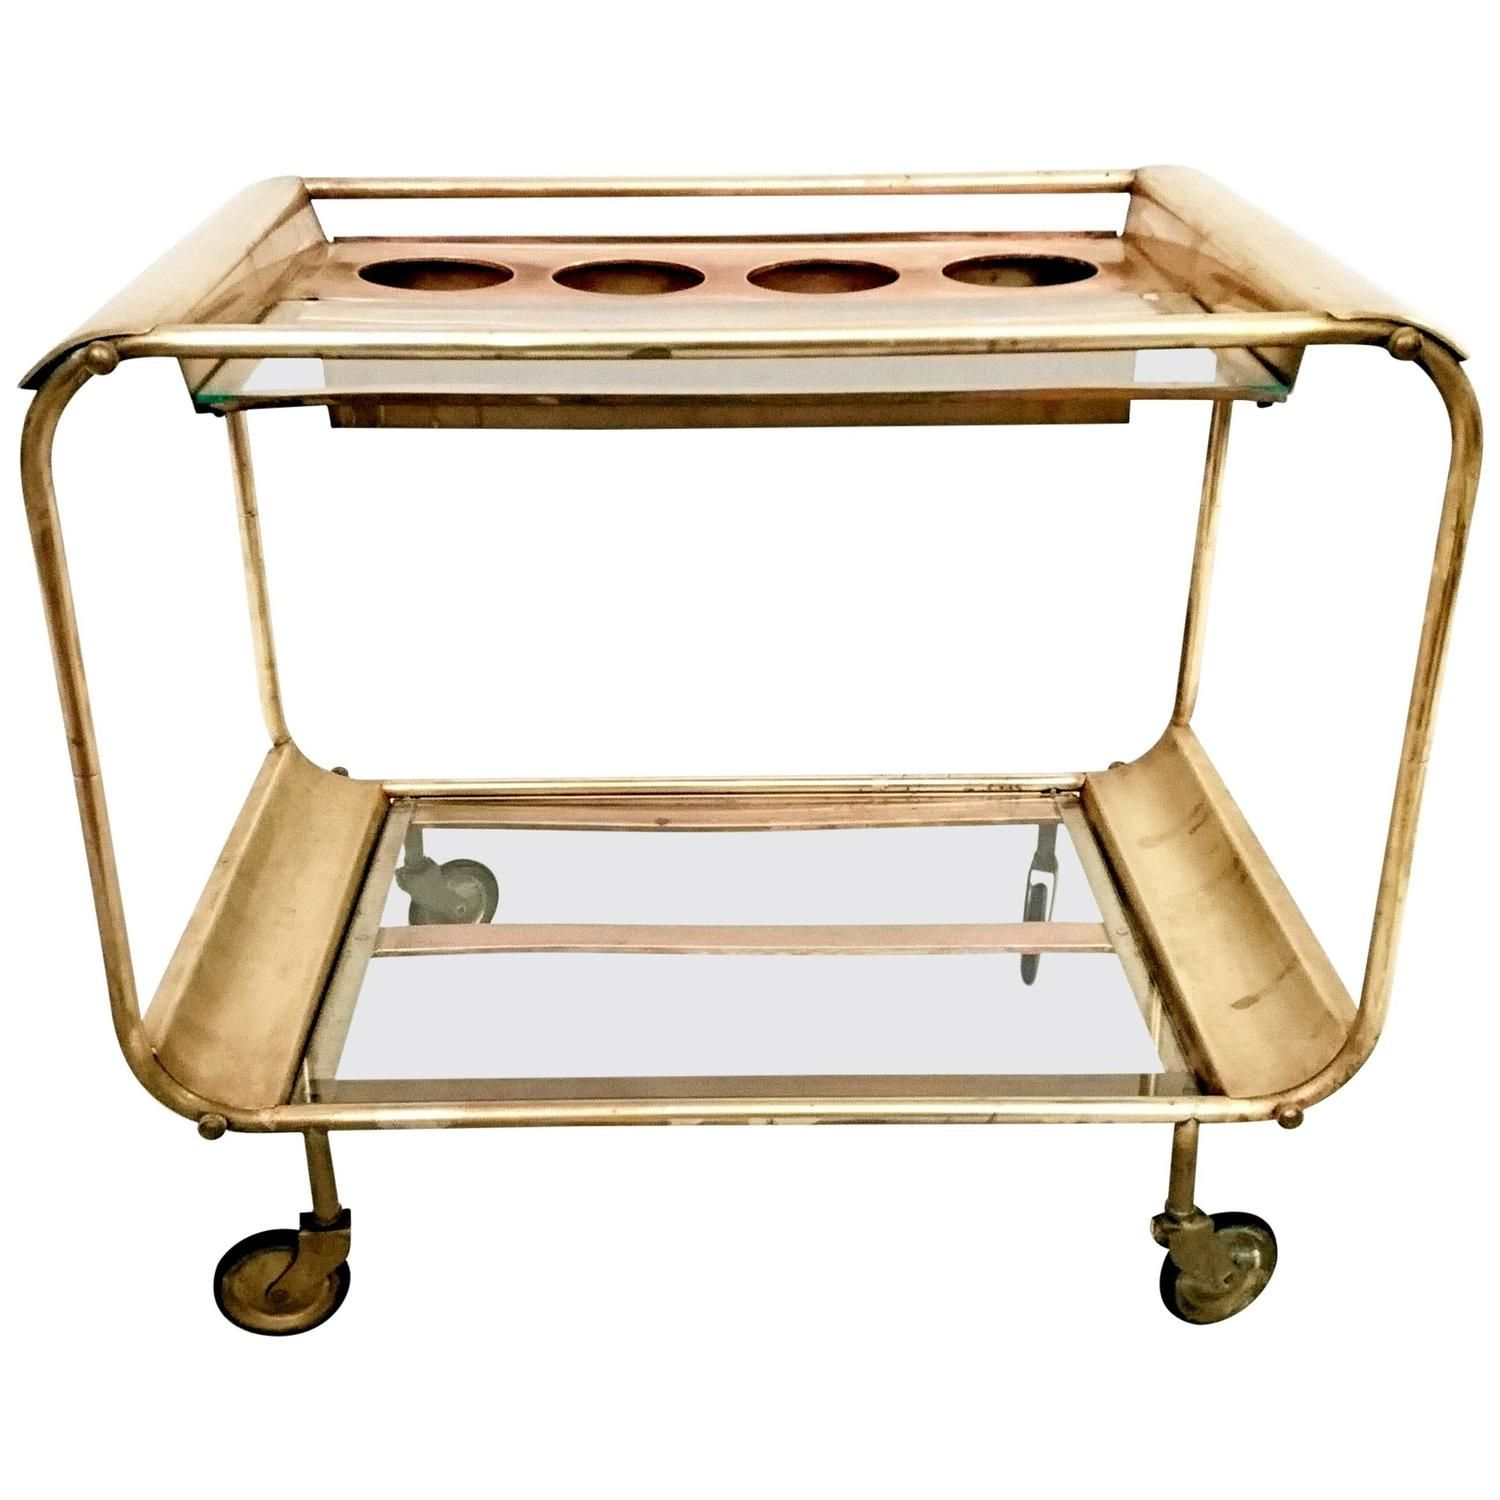 art deco bar cart in copper and brass italy 1930 from a unique